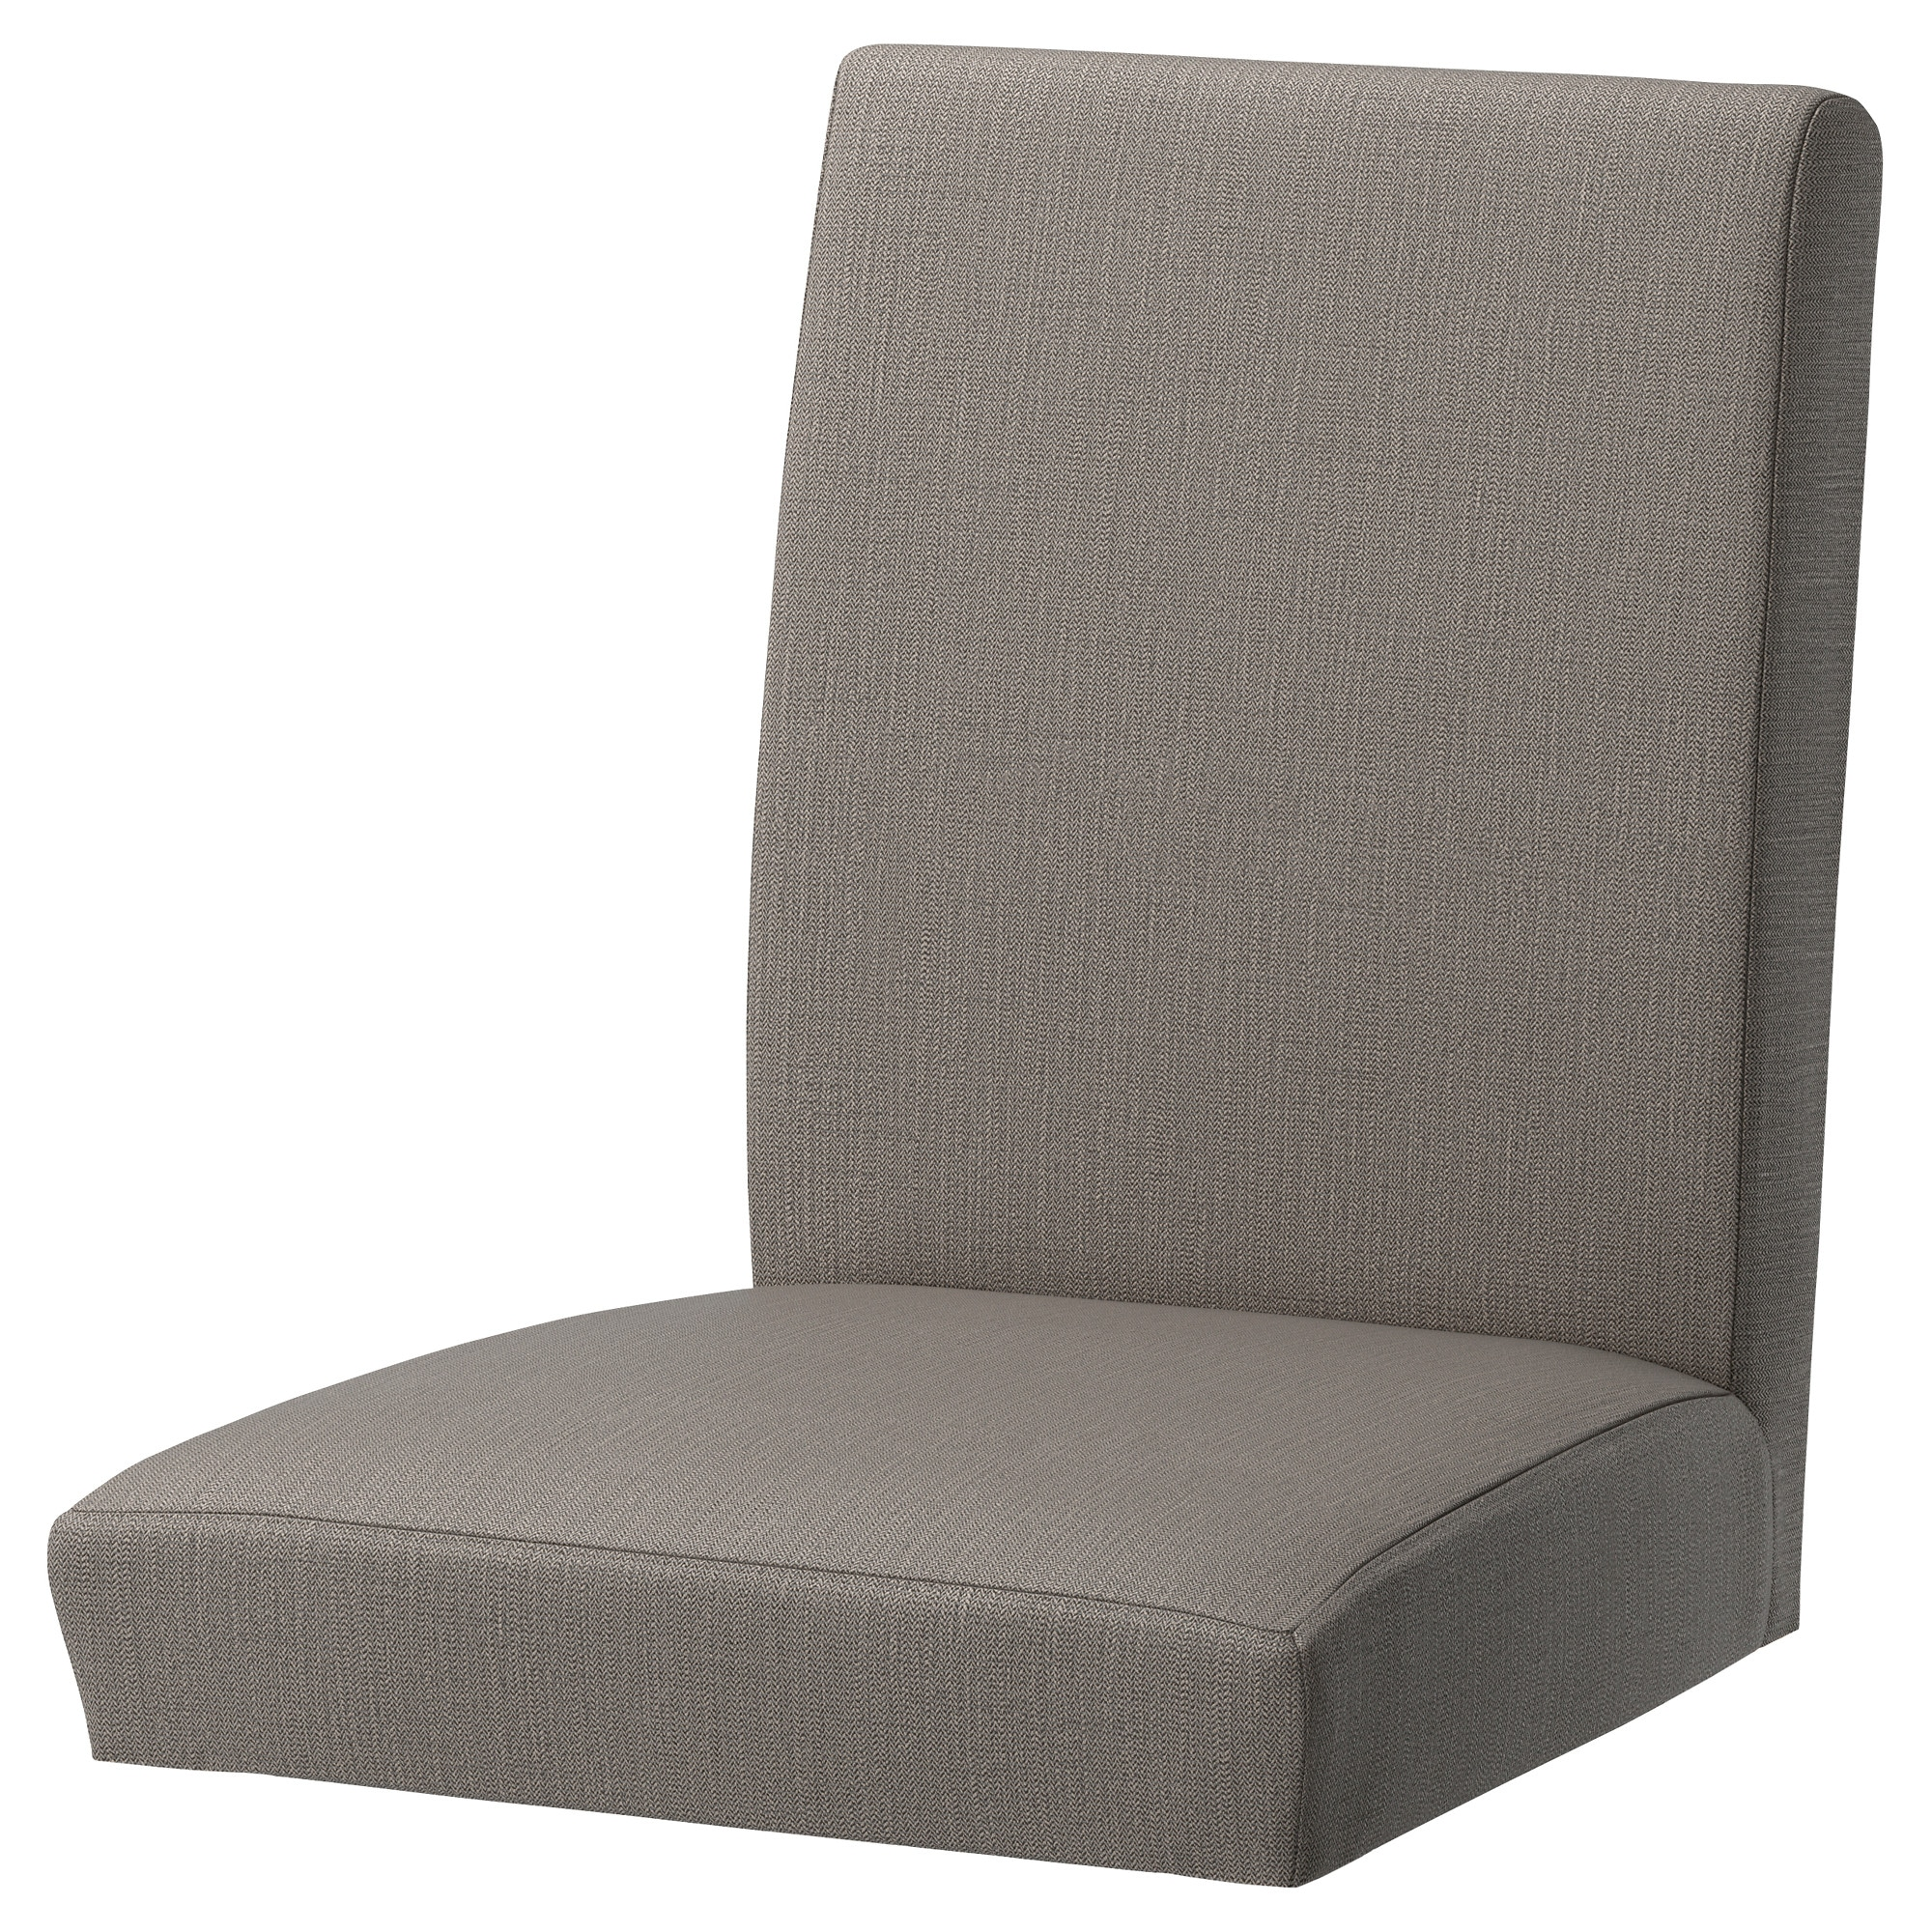 Housse chaise ikea for Housse bz 140 ikea